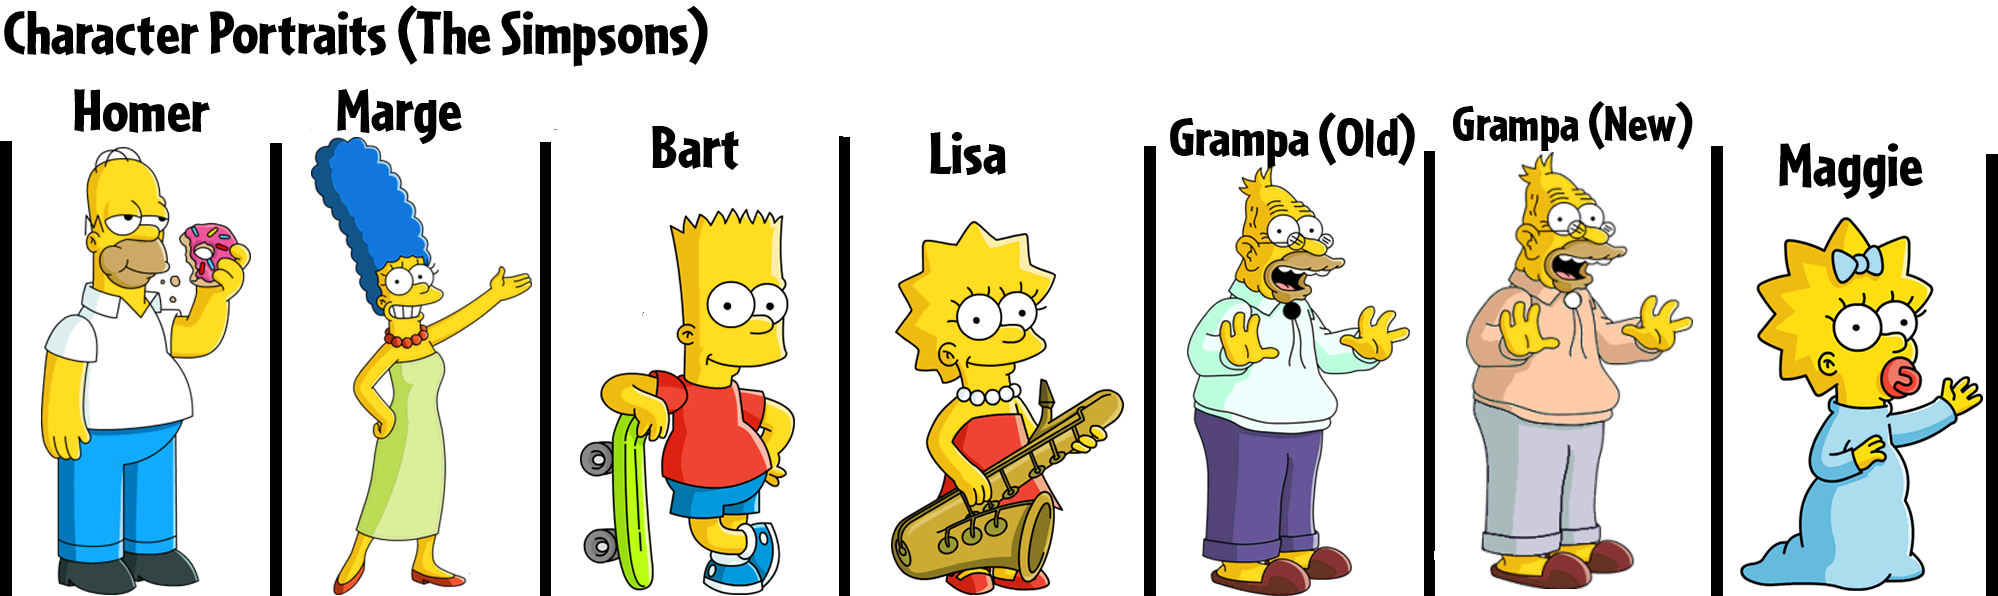 The Simpsons: Tapped Out - The Simpsons